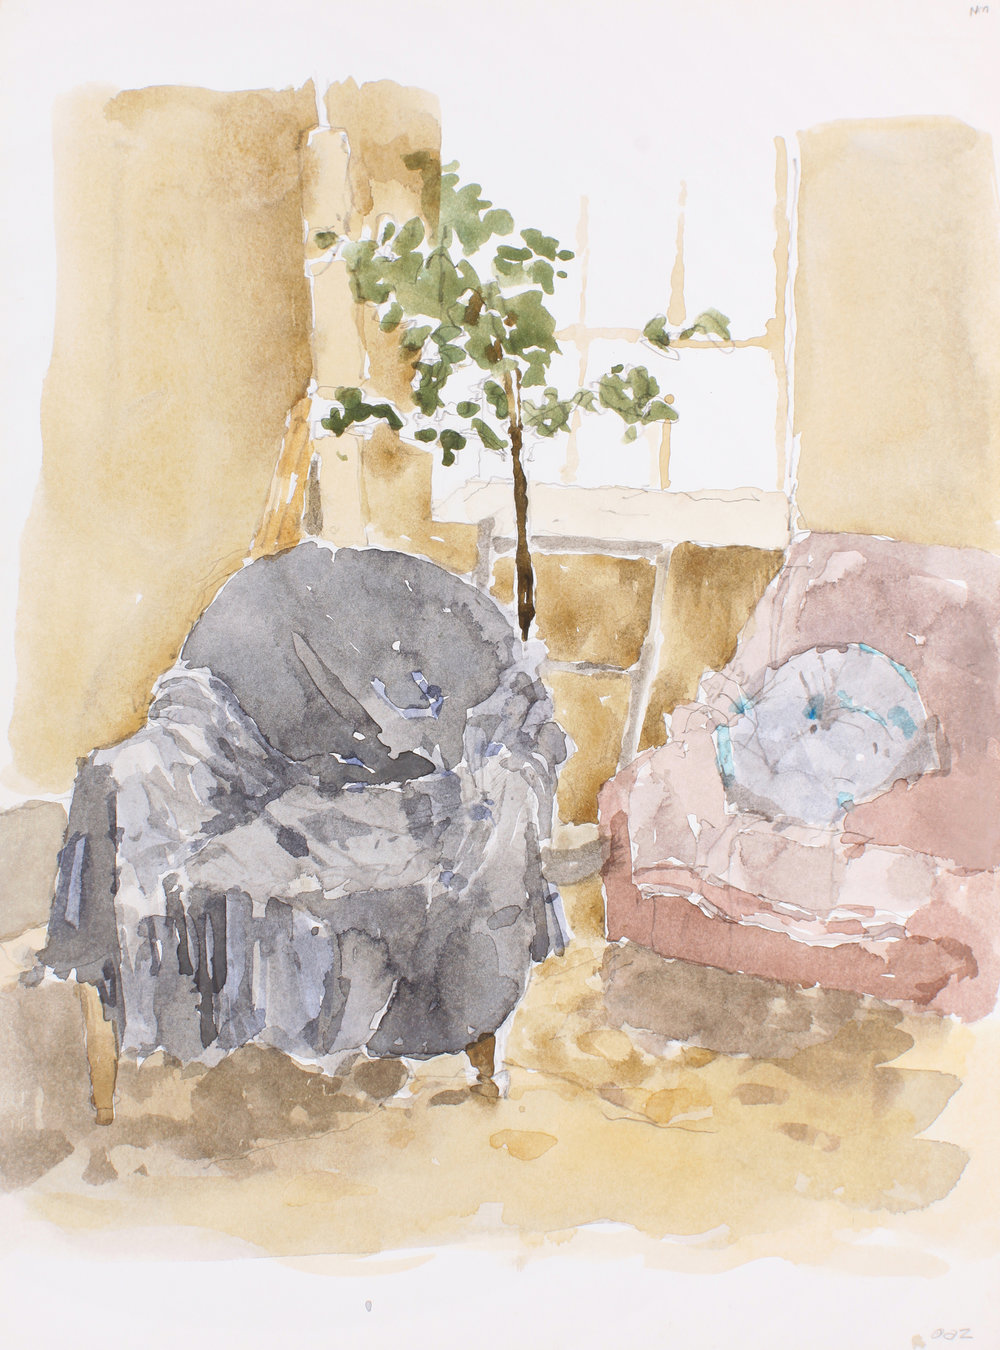 2002_Studio_Interior_with_Plant_and_Covered_Chairs_watercolour_and_pencil_on_paper_15x11in_WPF640.jpg